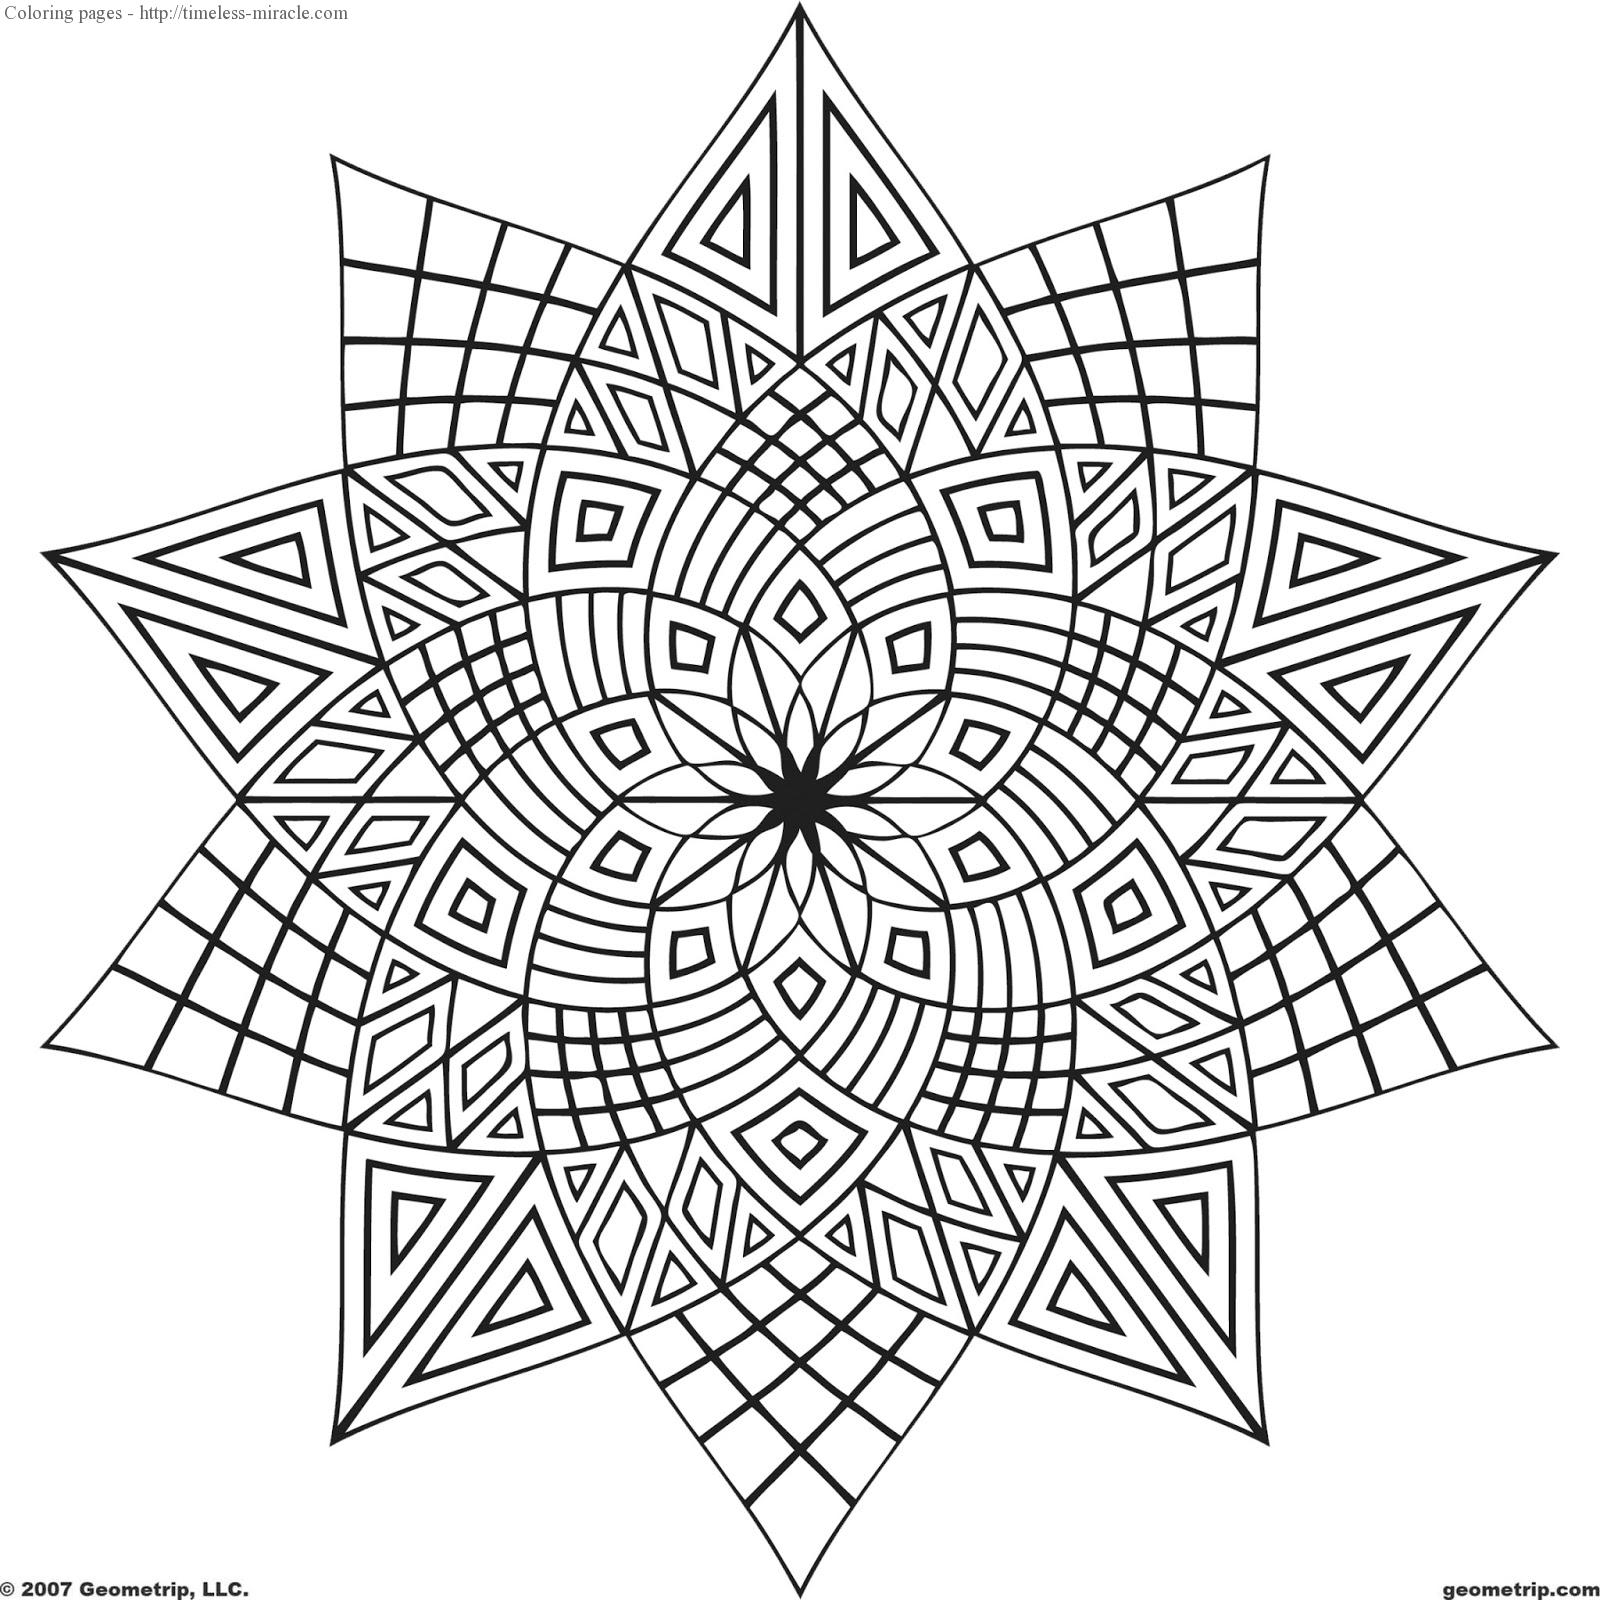 coloring pages for girls designs the 25 best ideas for coloring pages for tween girls for designs pages girls coloring